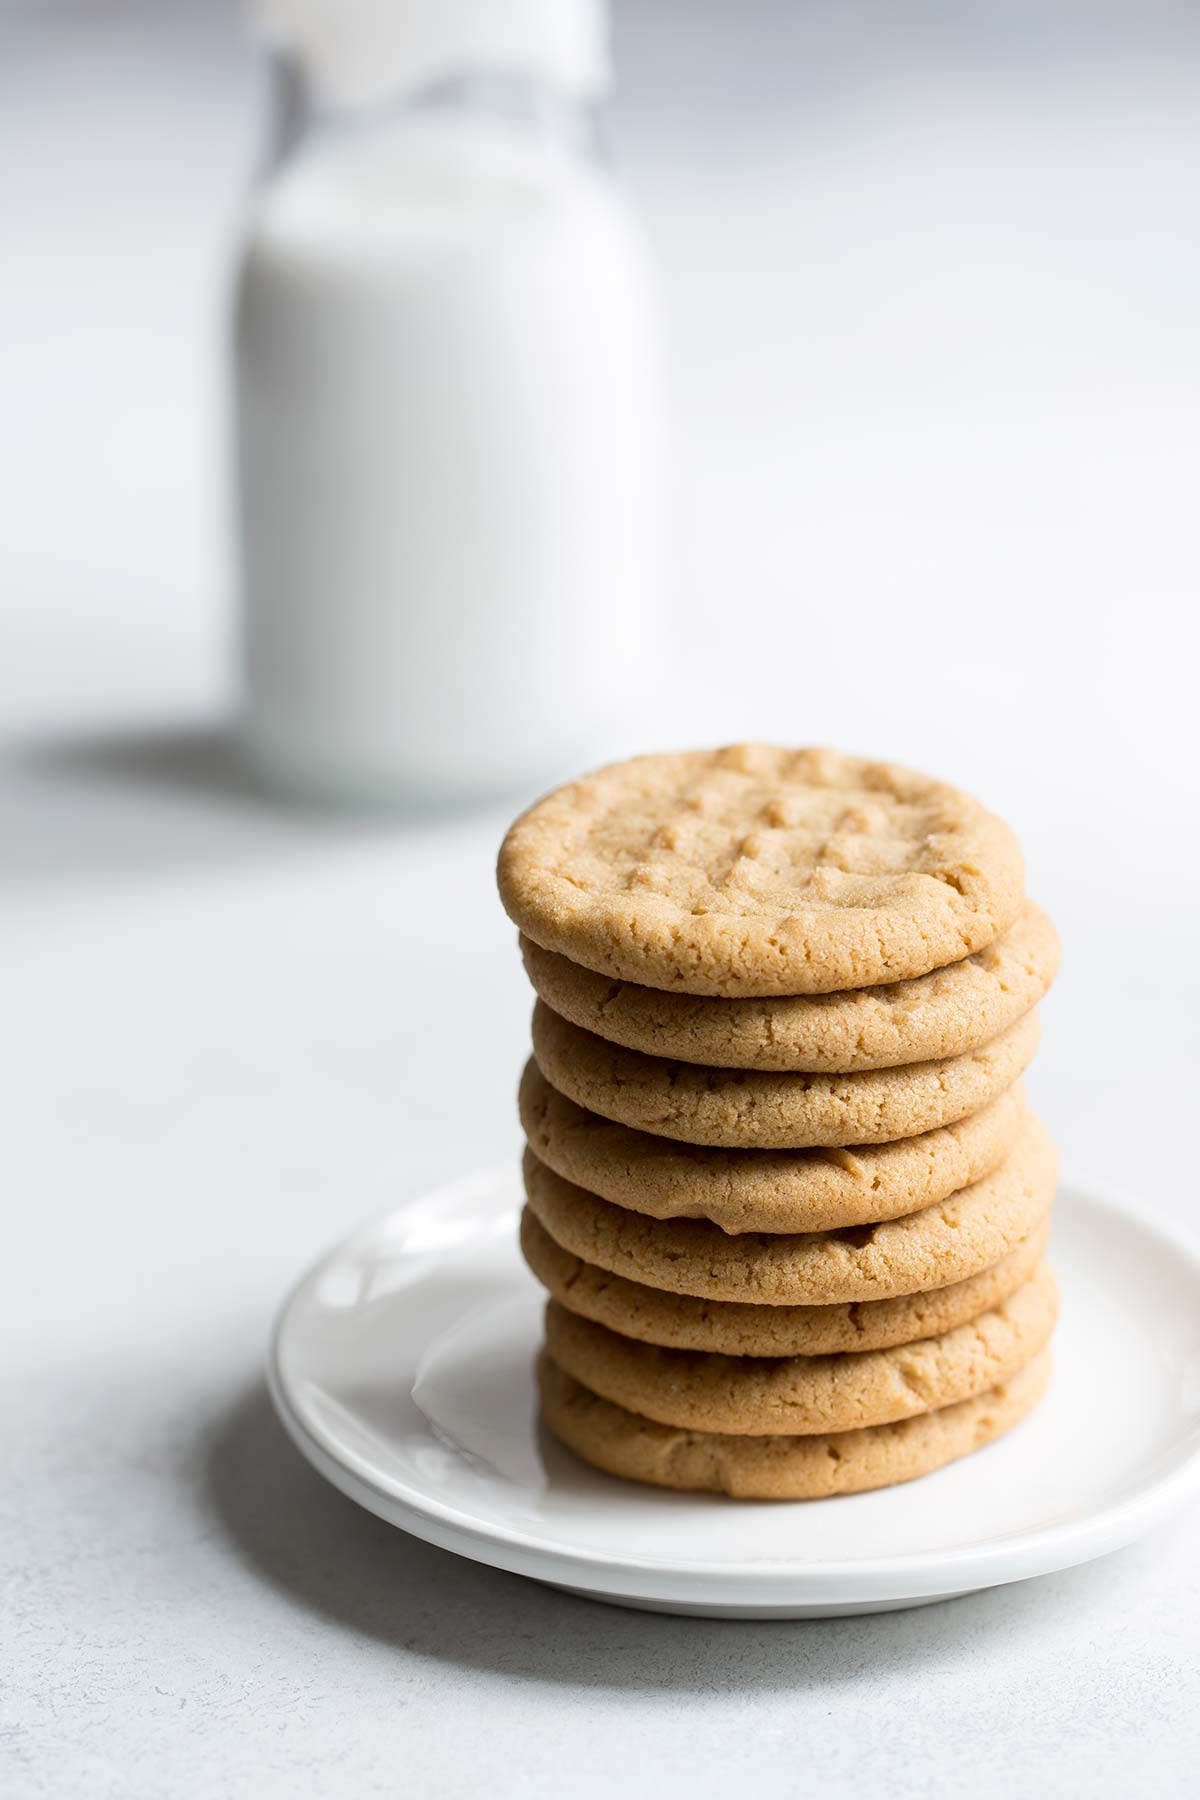 A photo of the finished homemade peanut butter cookies on a white plate.